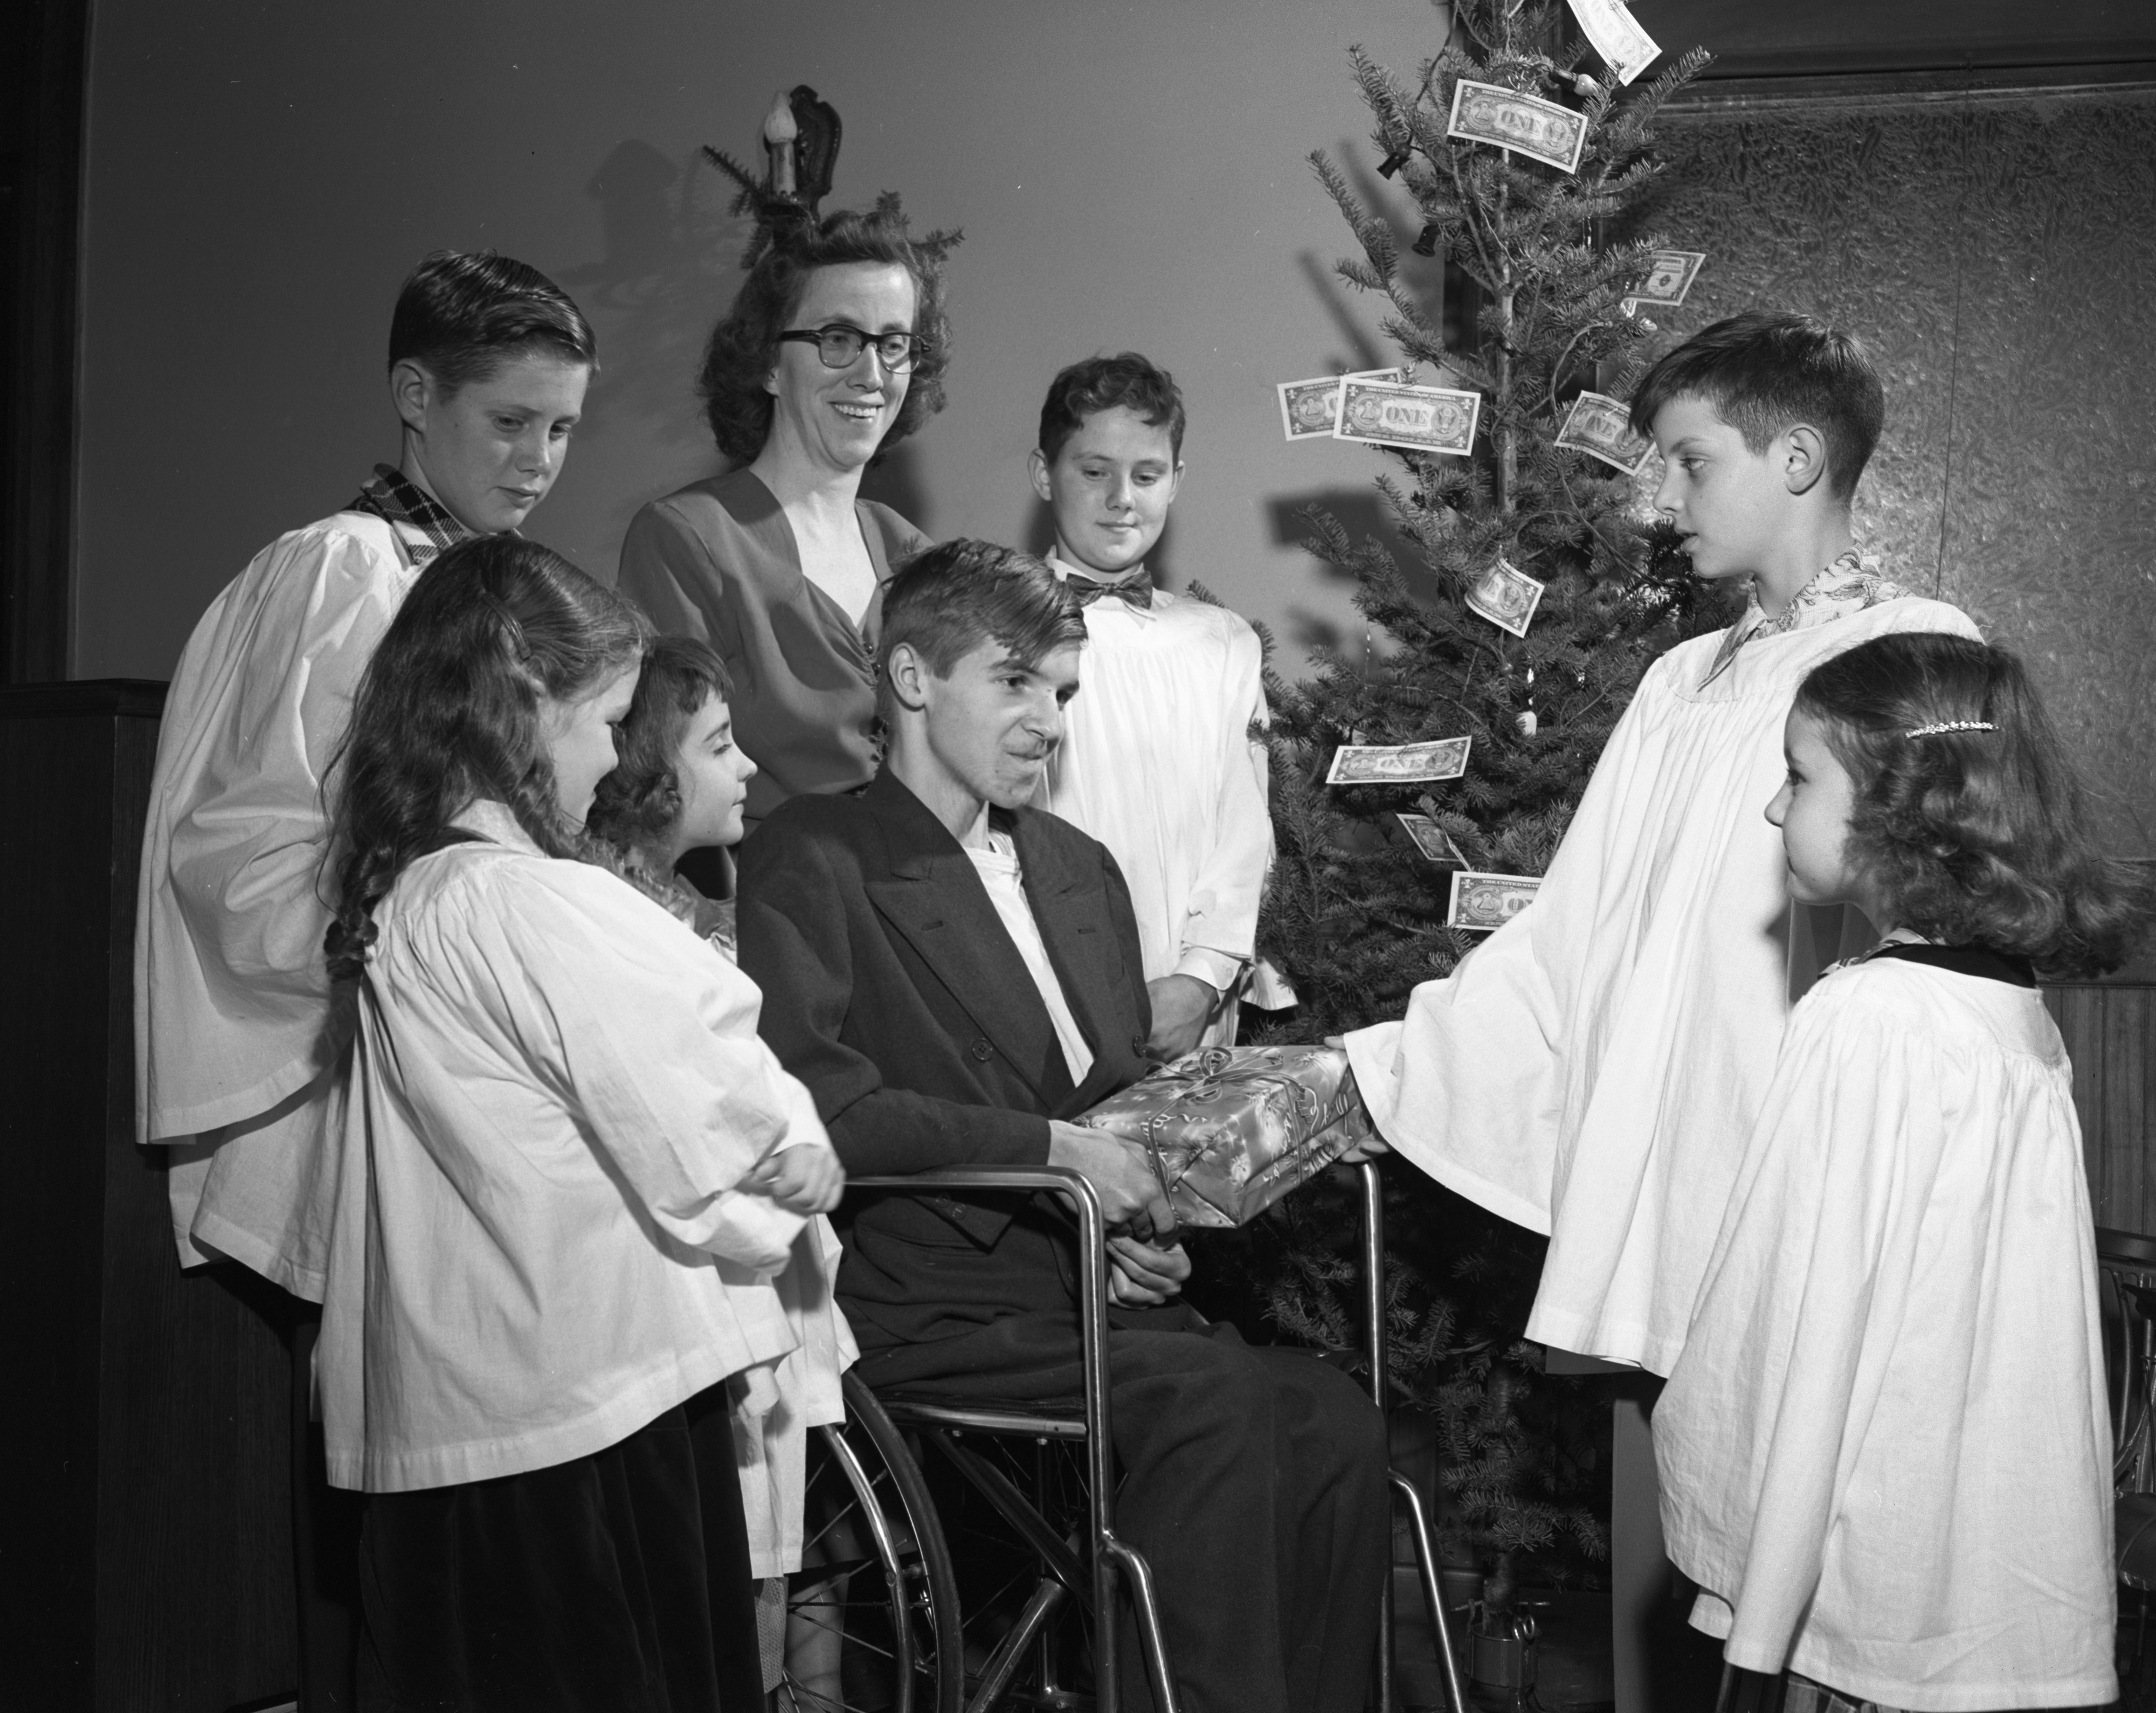 Seventh Day Adventists and Muscular Dystrophy Patient Irvin L. Bingham, December 1952 image